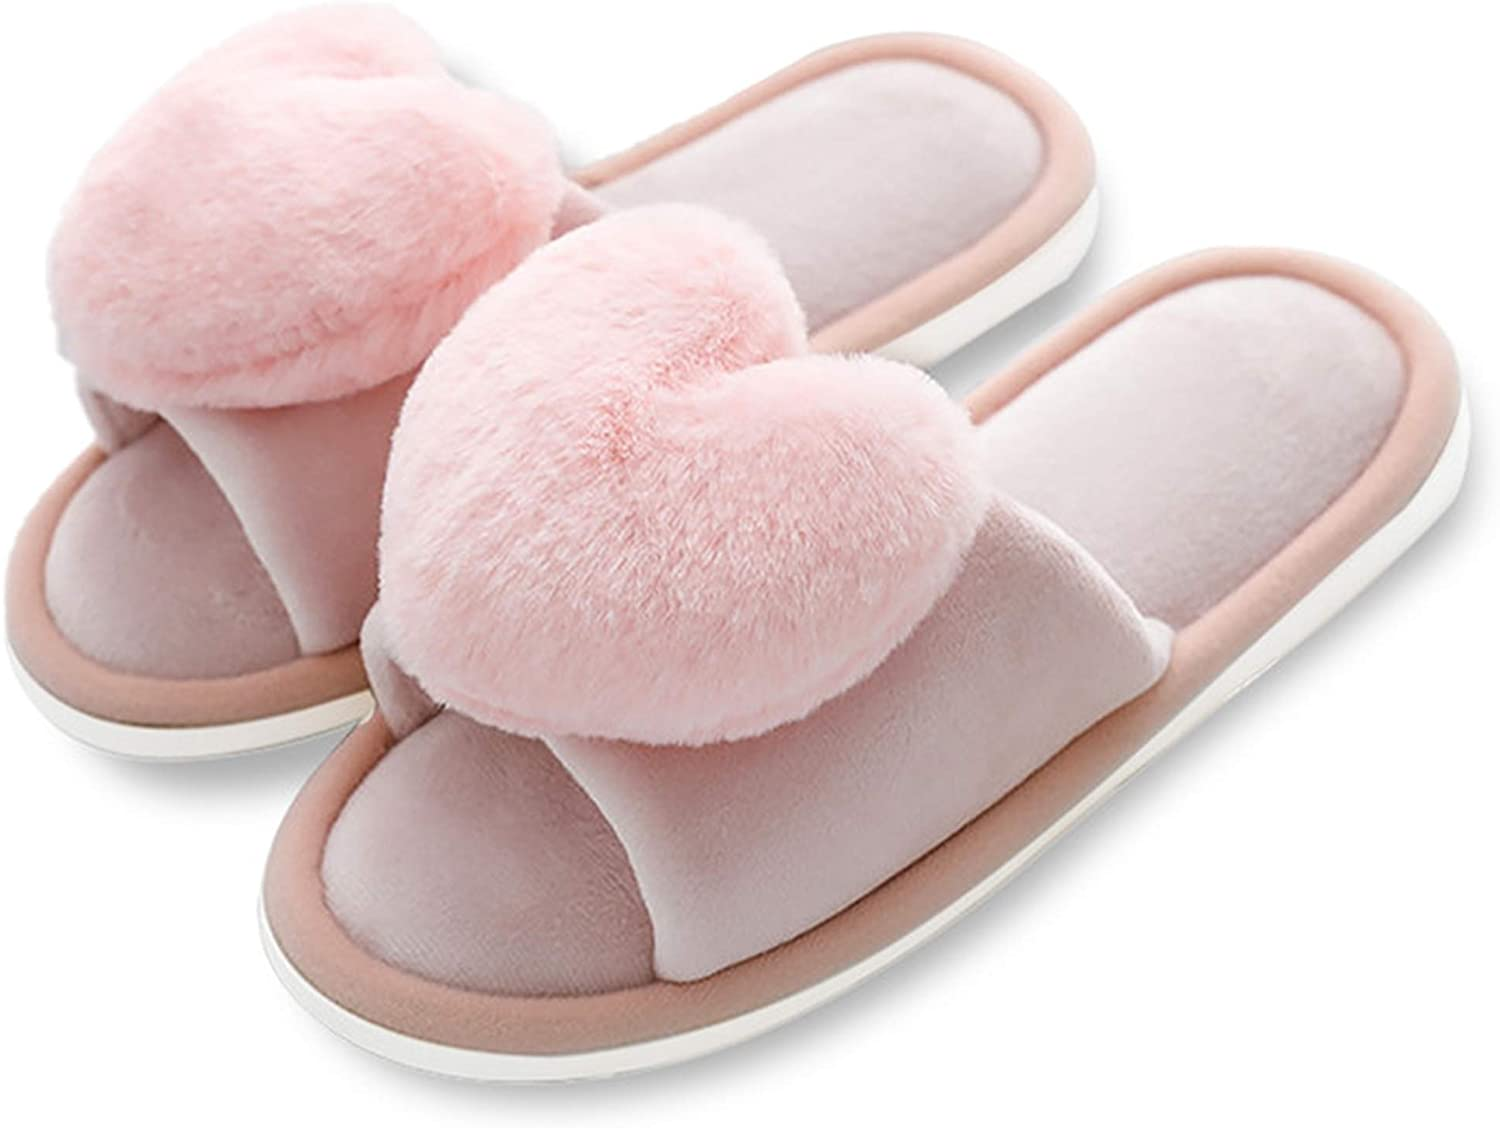 CozyWay Plush Slippers for Women Soft Furry Open Toe House Shoes Outdoor Indoor Faux Rabbit Fur Warm Memory Foam Padding Slip